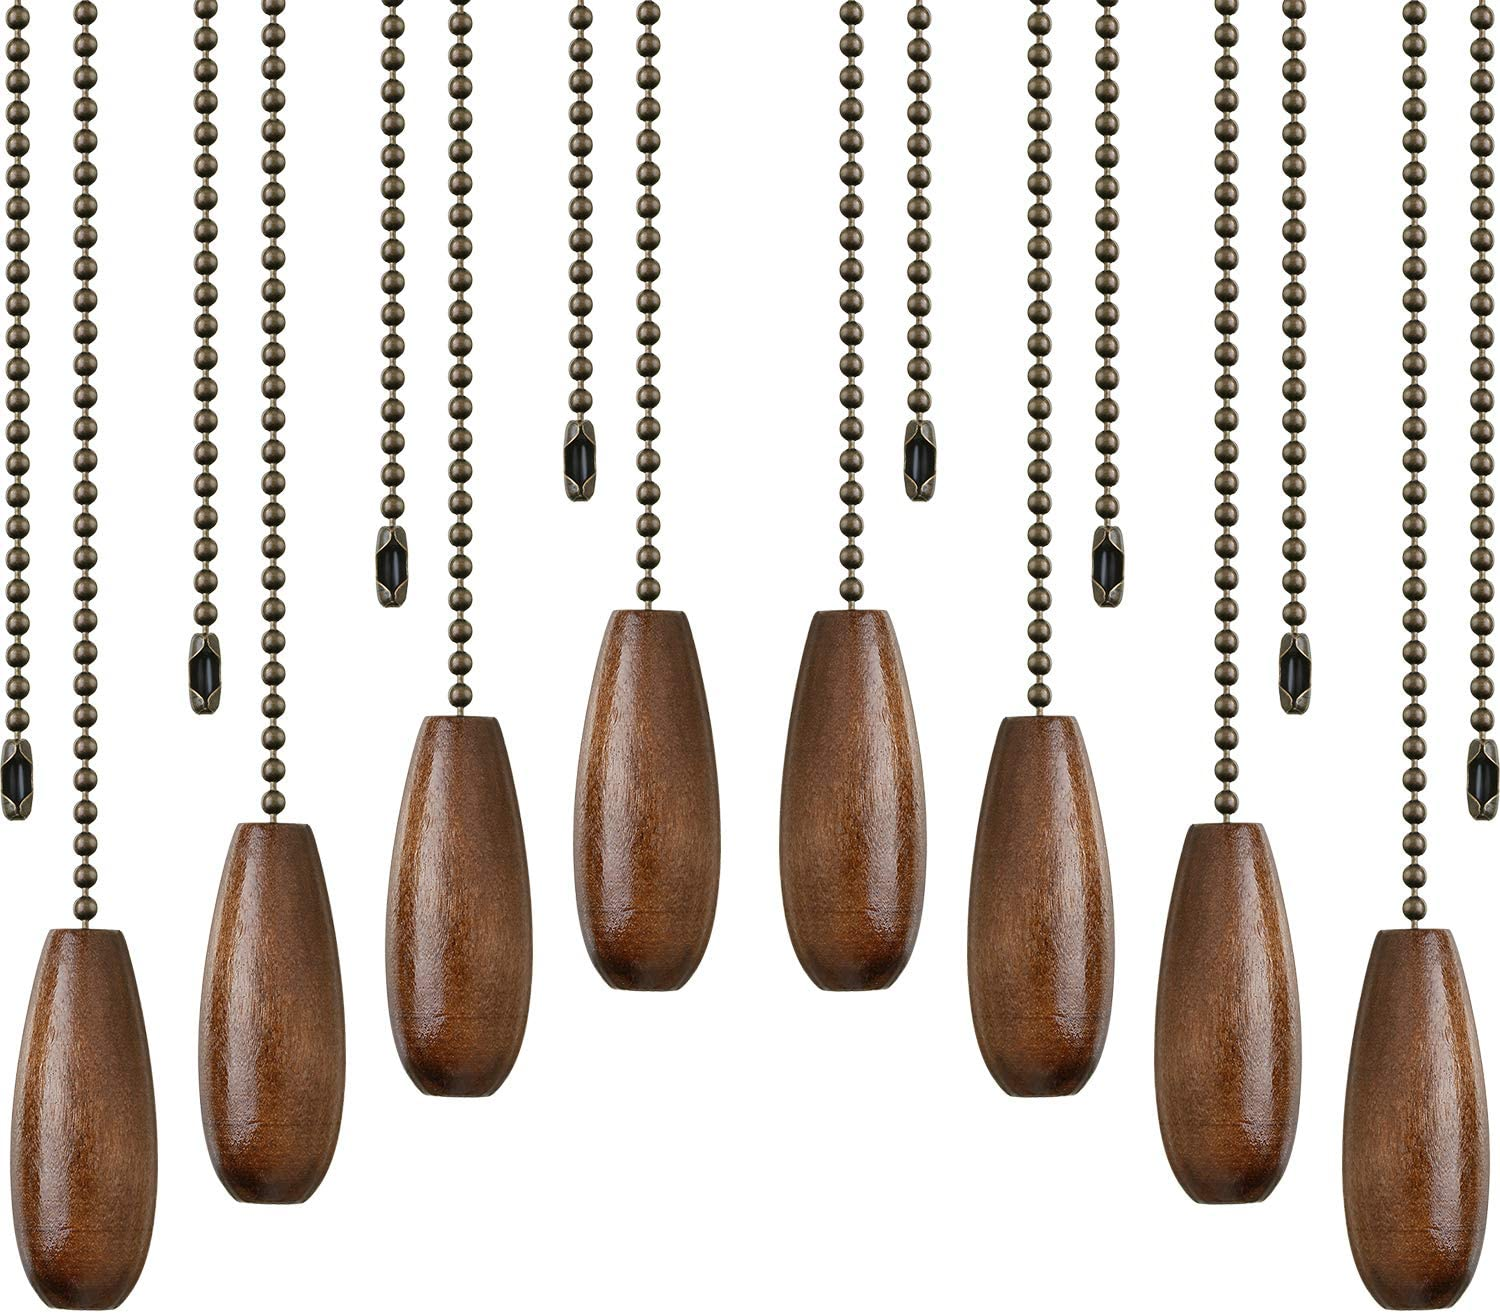 8 Pieces Ceiling Fan Pull Chains Wooden Pendant Pull Chain Extension for Ceiling Light Lamp Fan Chain (Walnut Color) - -